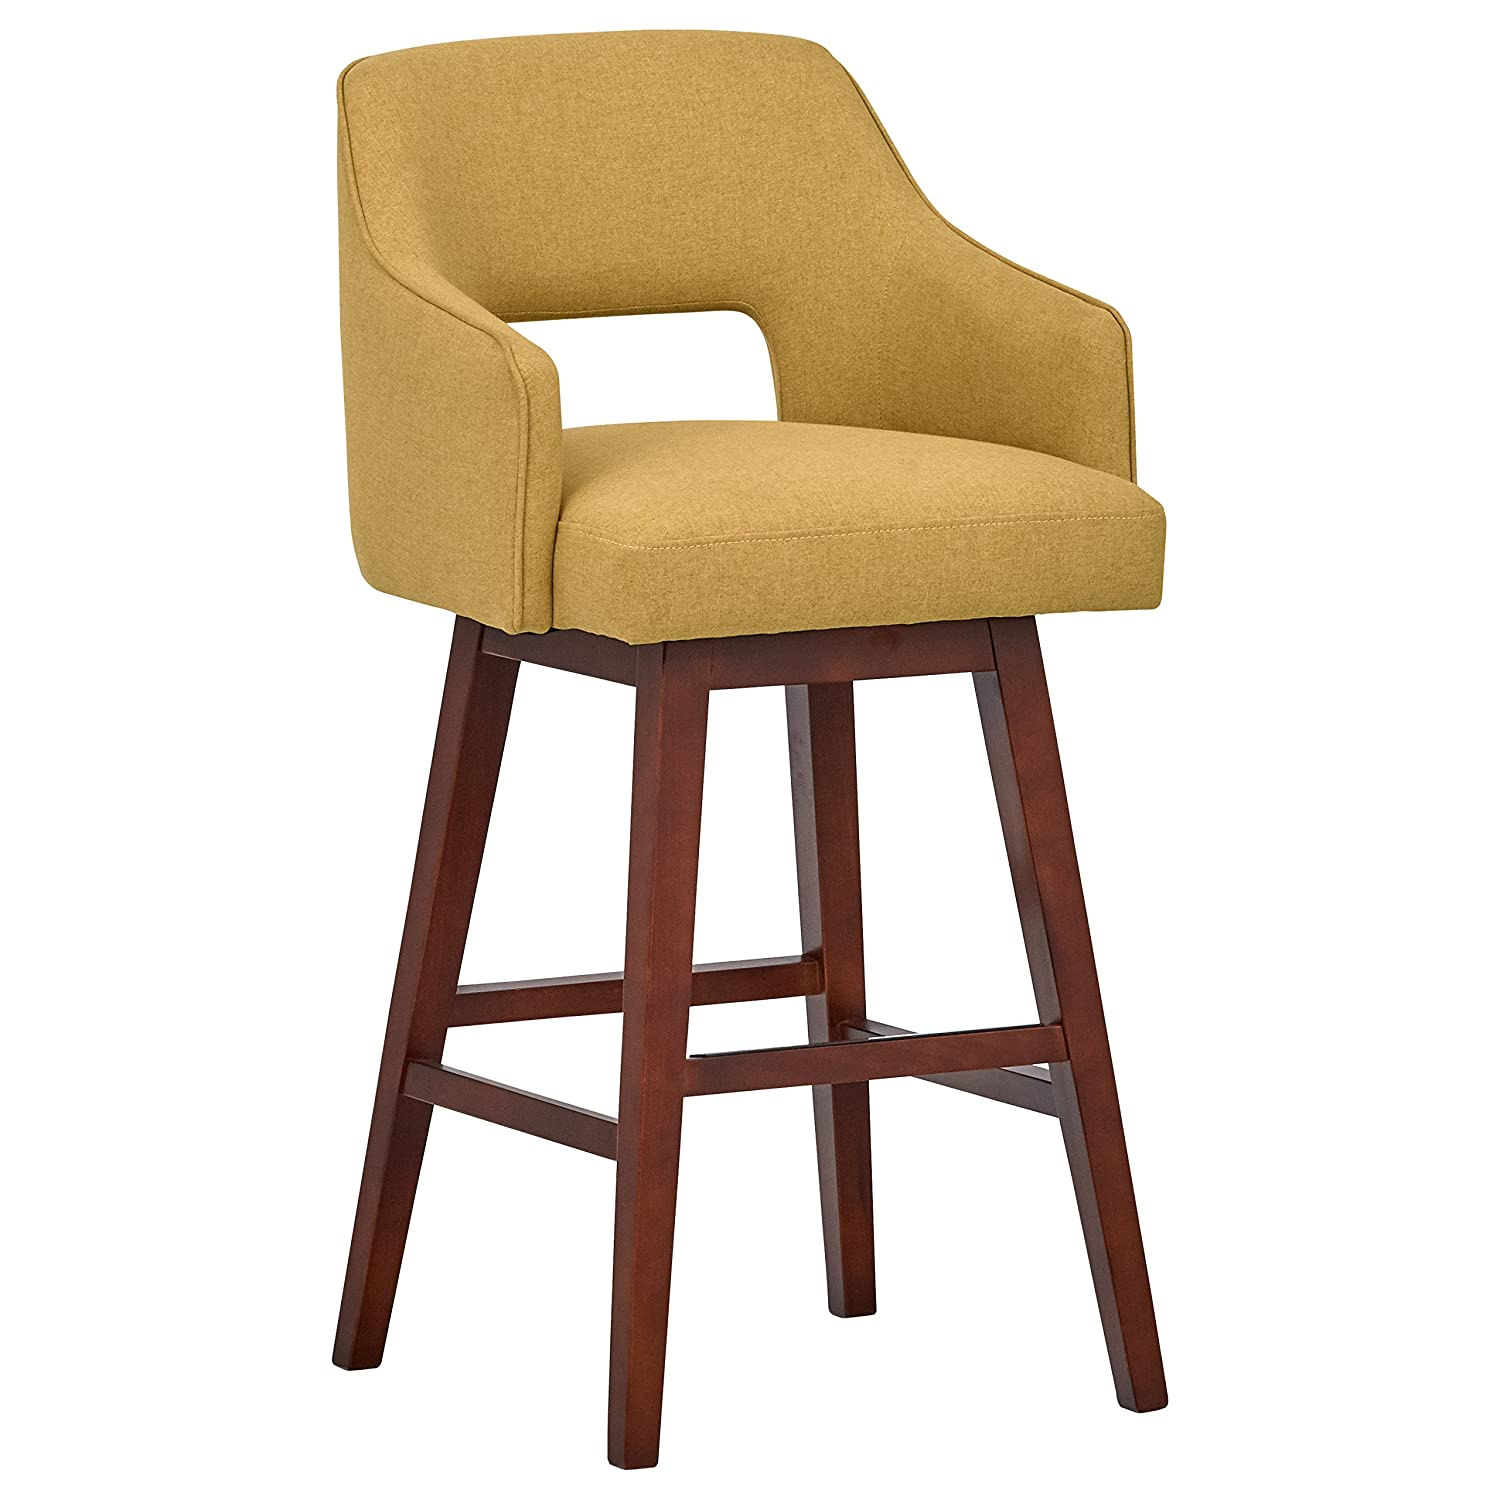 Pleasing 12 Best Bar Stools To Buy In 2019 Top Rated Stools For Creativecarmelina Interior Chair Design Creativecarmelinacom